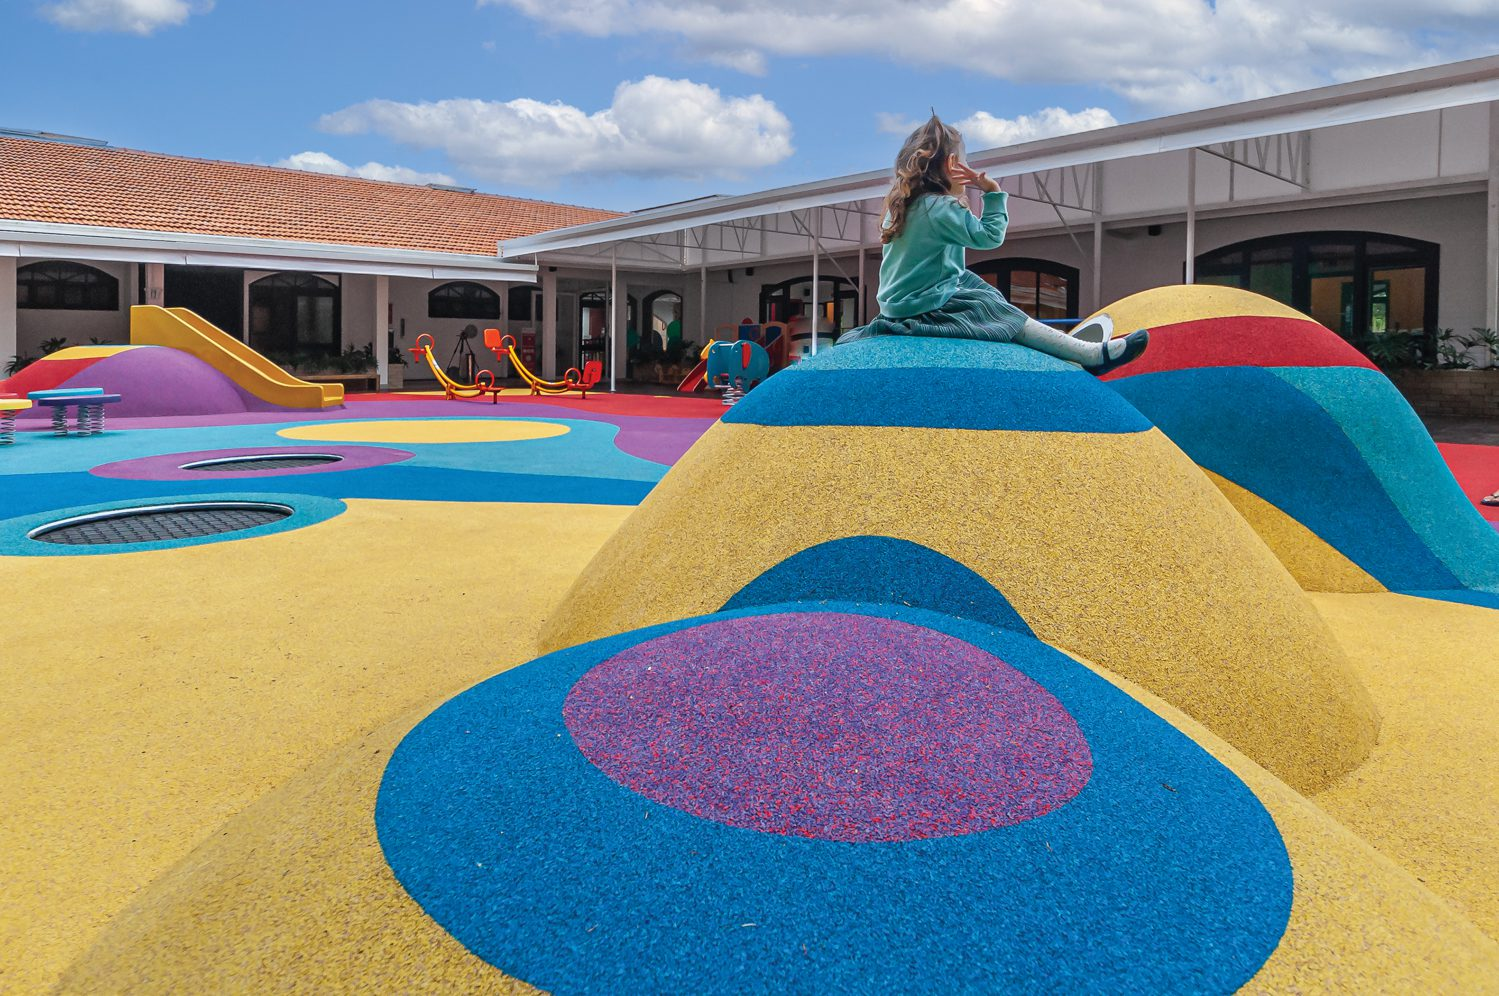 A mound of colorful hills in the outdoor play area.